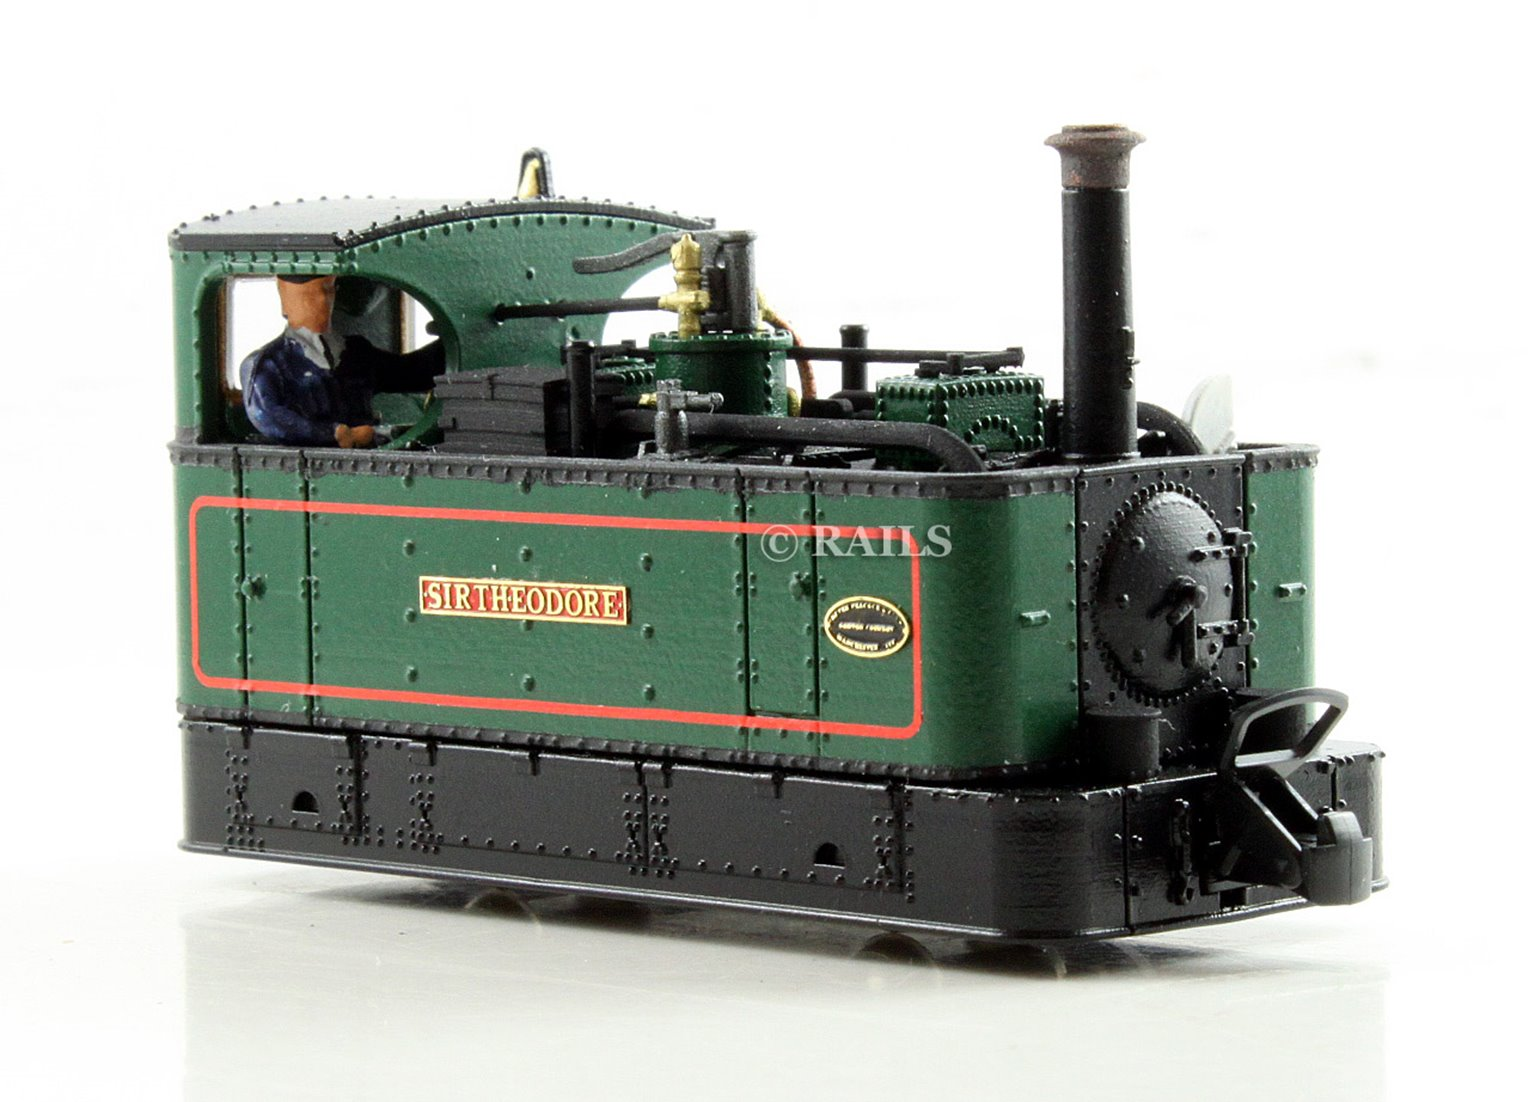 FOURDEES LIMITED OO9 SCALE 41-201 'SIR THEODORE' GREEN GLYN VALLEY TRAMWAY LOCO